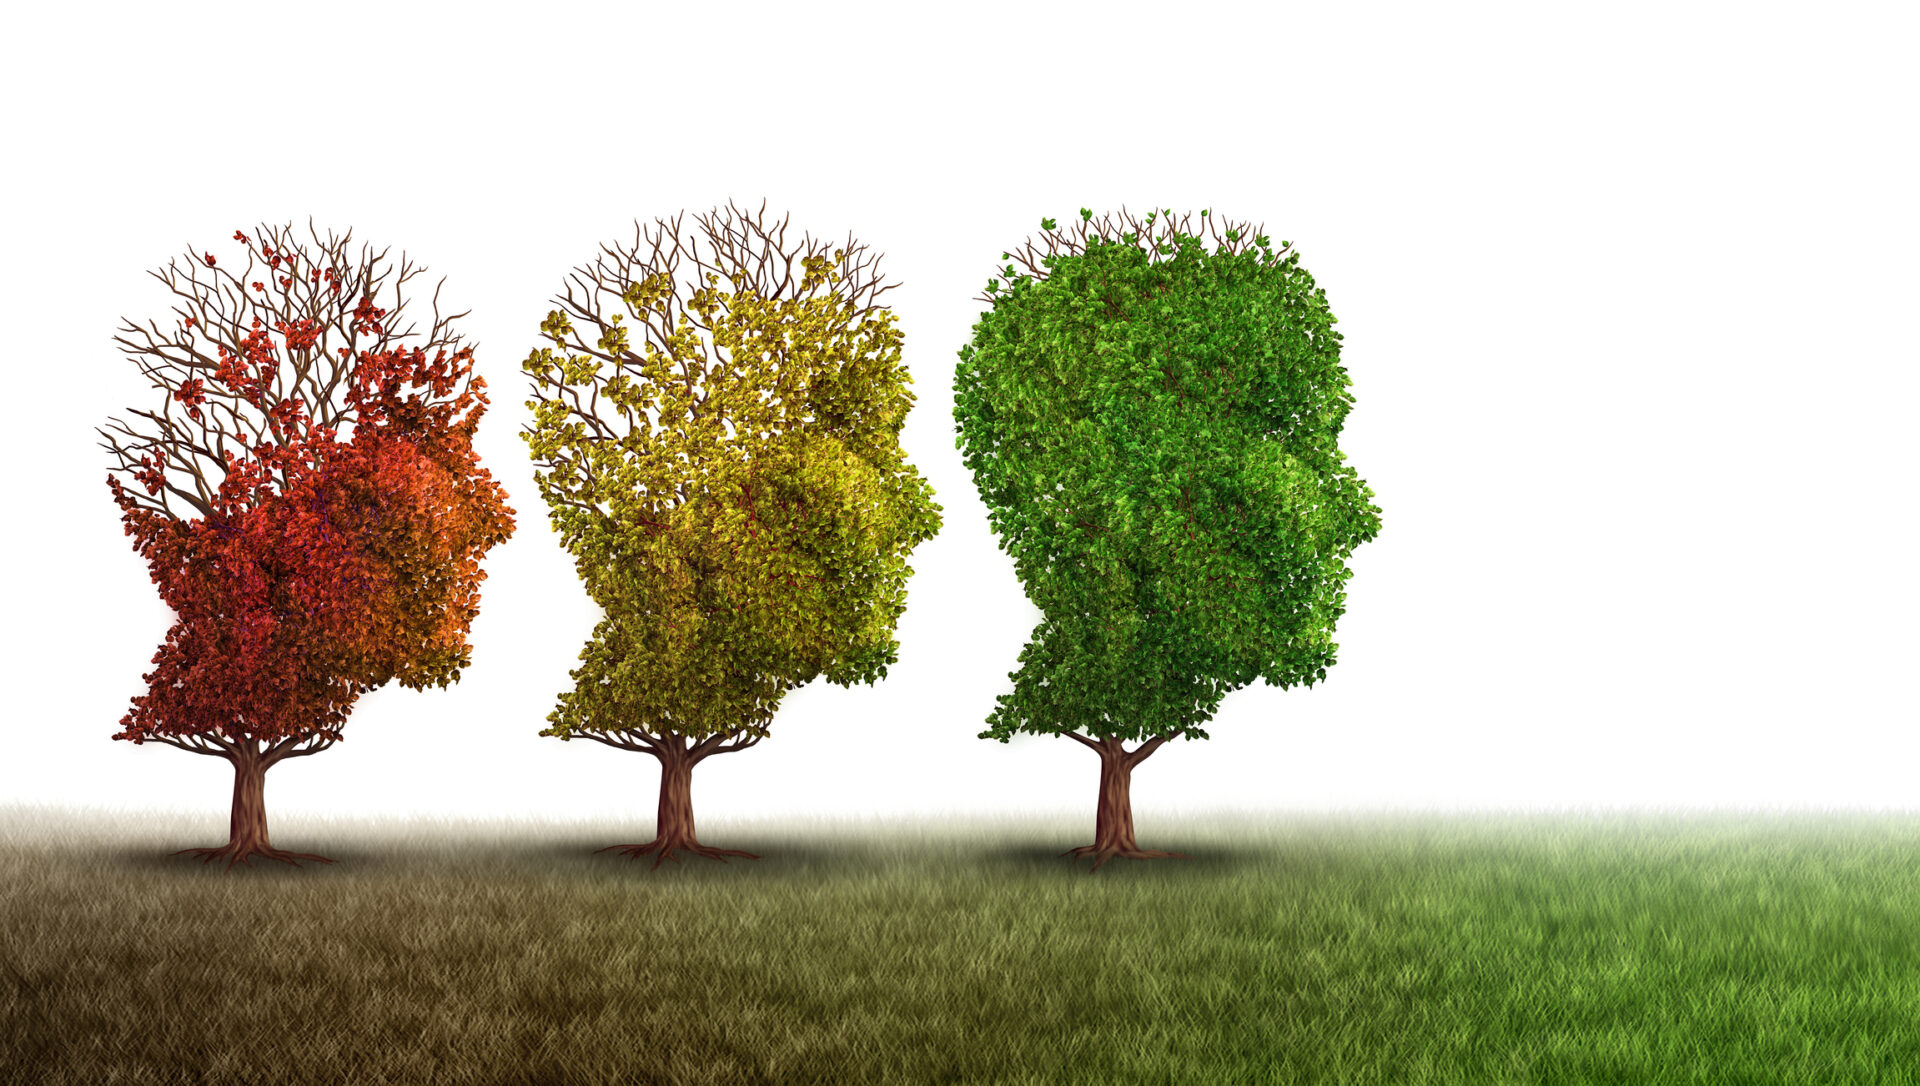 a concept of deteriorating memory using trees losing leaves as an analogy